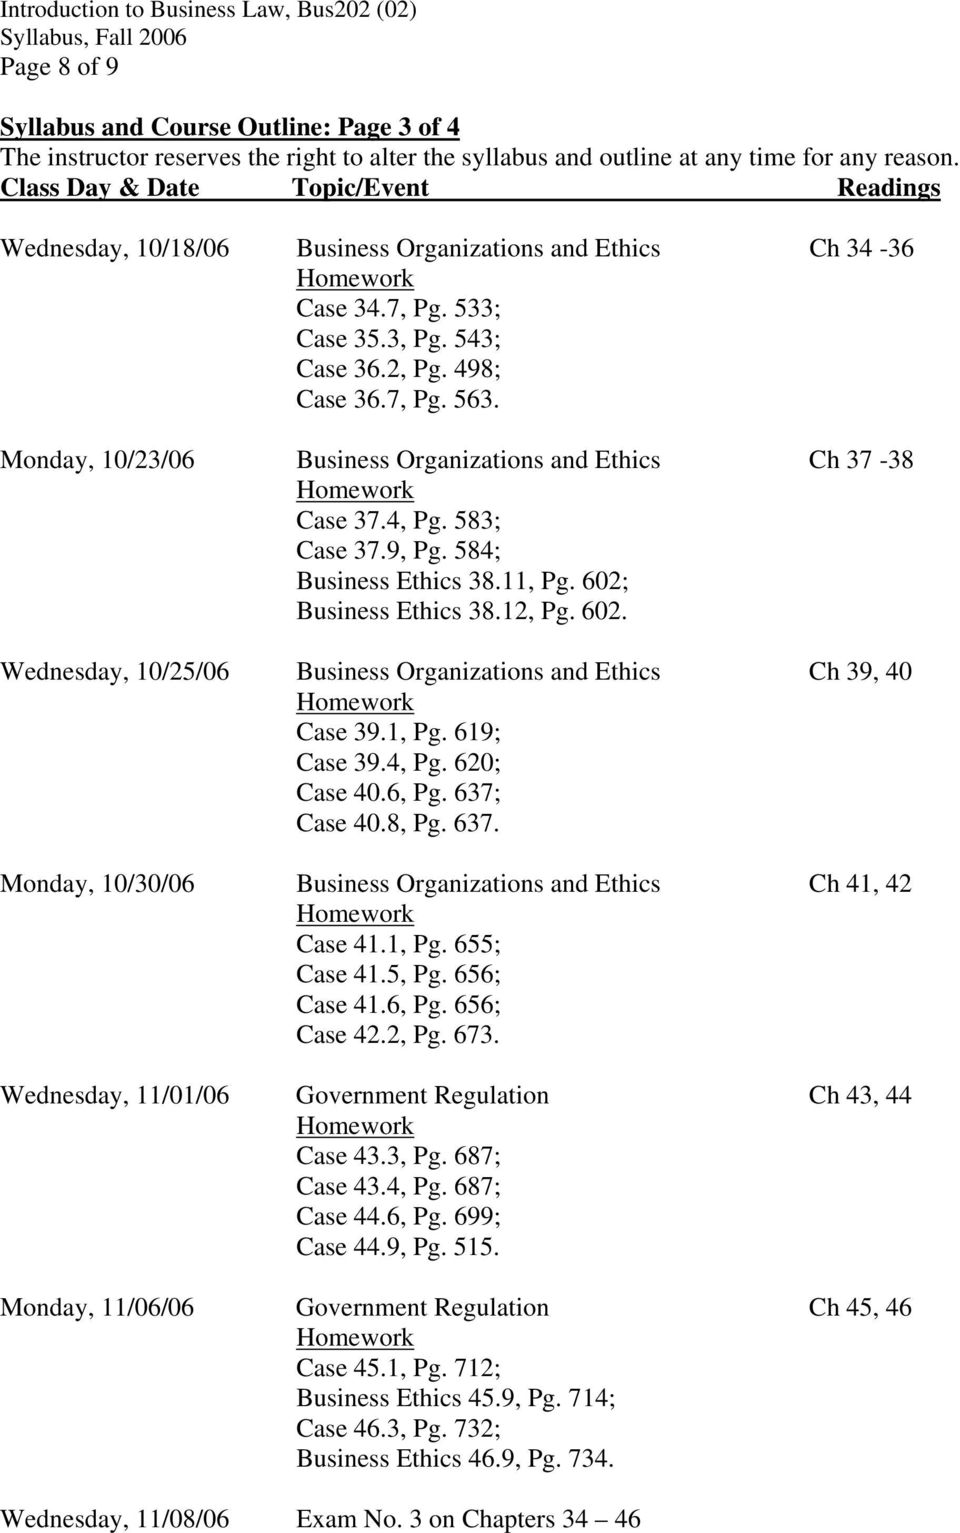 Monday, 10/23/06 Business Organizations and Ethics Ch 37-38 Case 37.4, Pg. 583; Case 37.9, Pg. 584; Business Ethics 38.11, Pg. 602;